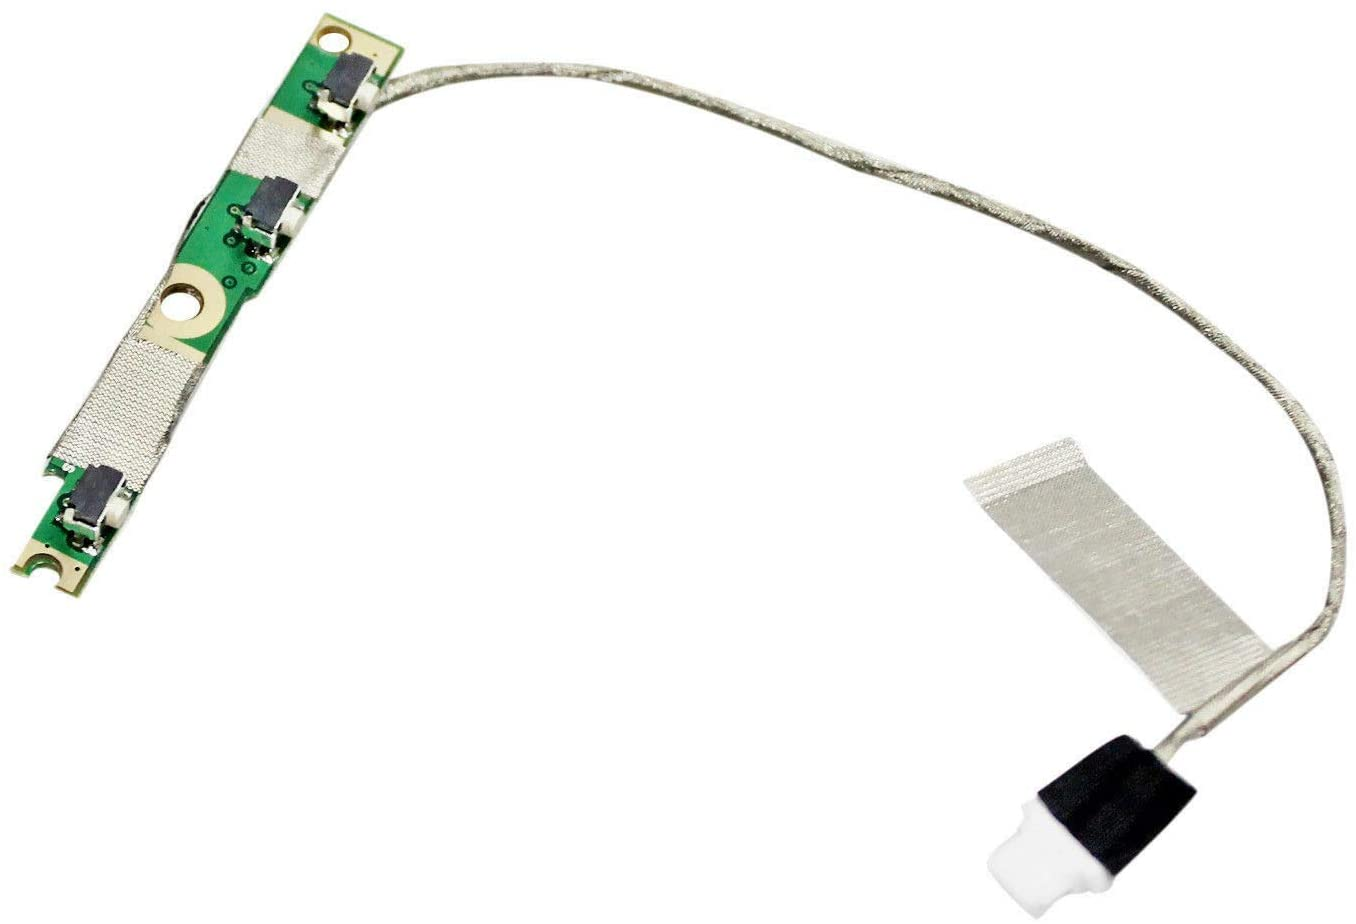 Replacement Power Button Board with Cable for Dell Inspiron 5568 7568 7569 7778 7779, 13 5368 5378 5379 5578 7375 7368 7378 Series Laptop P/N: 450.07R0A.0002